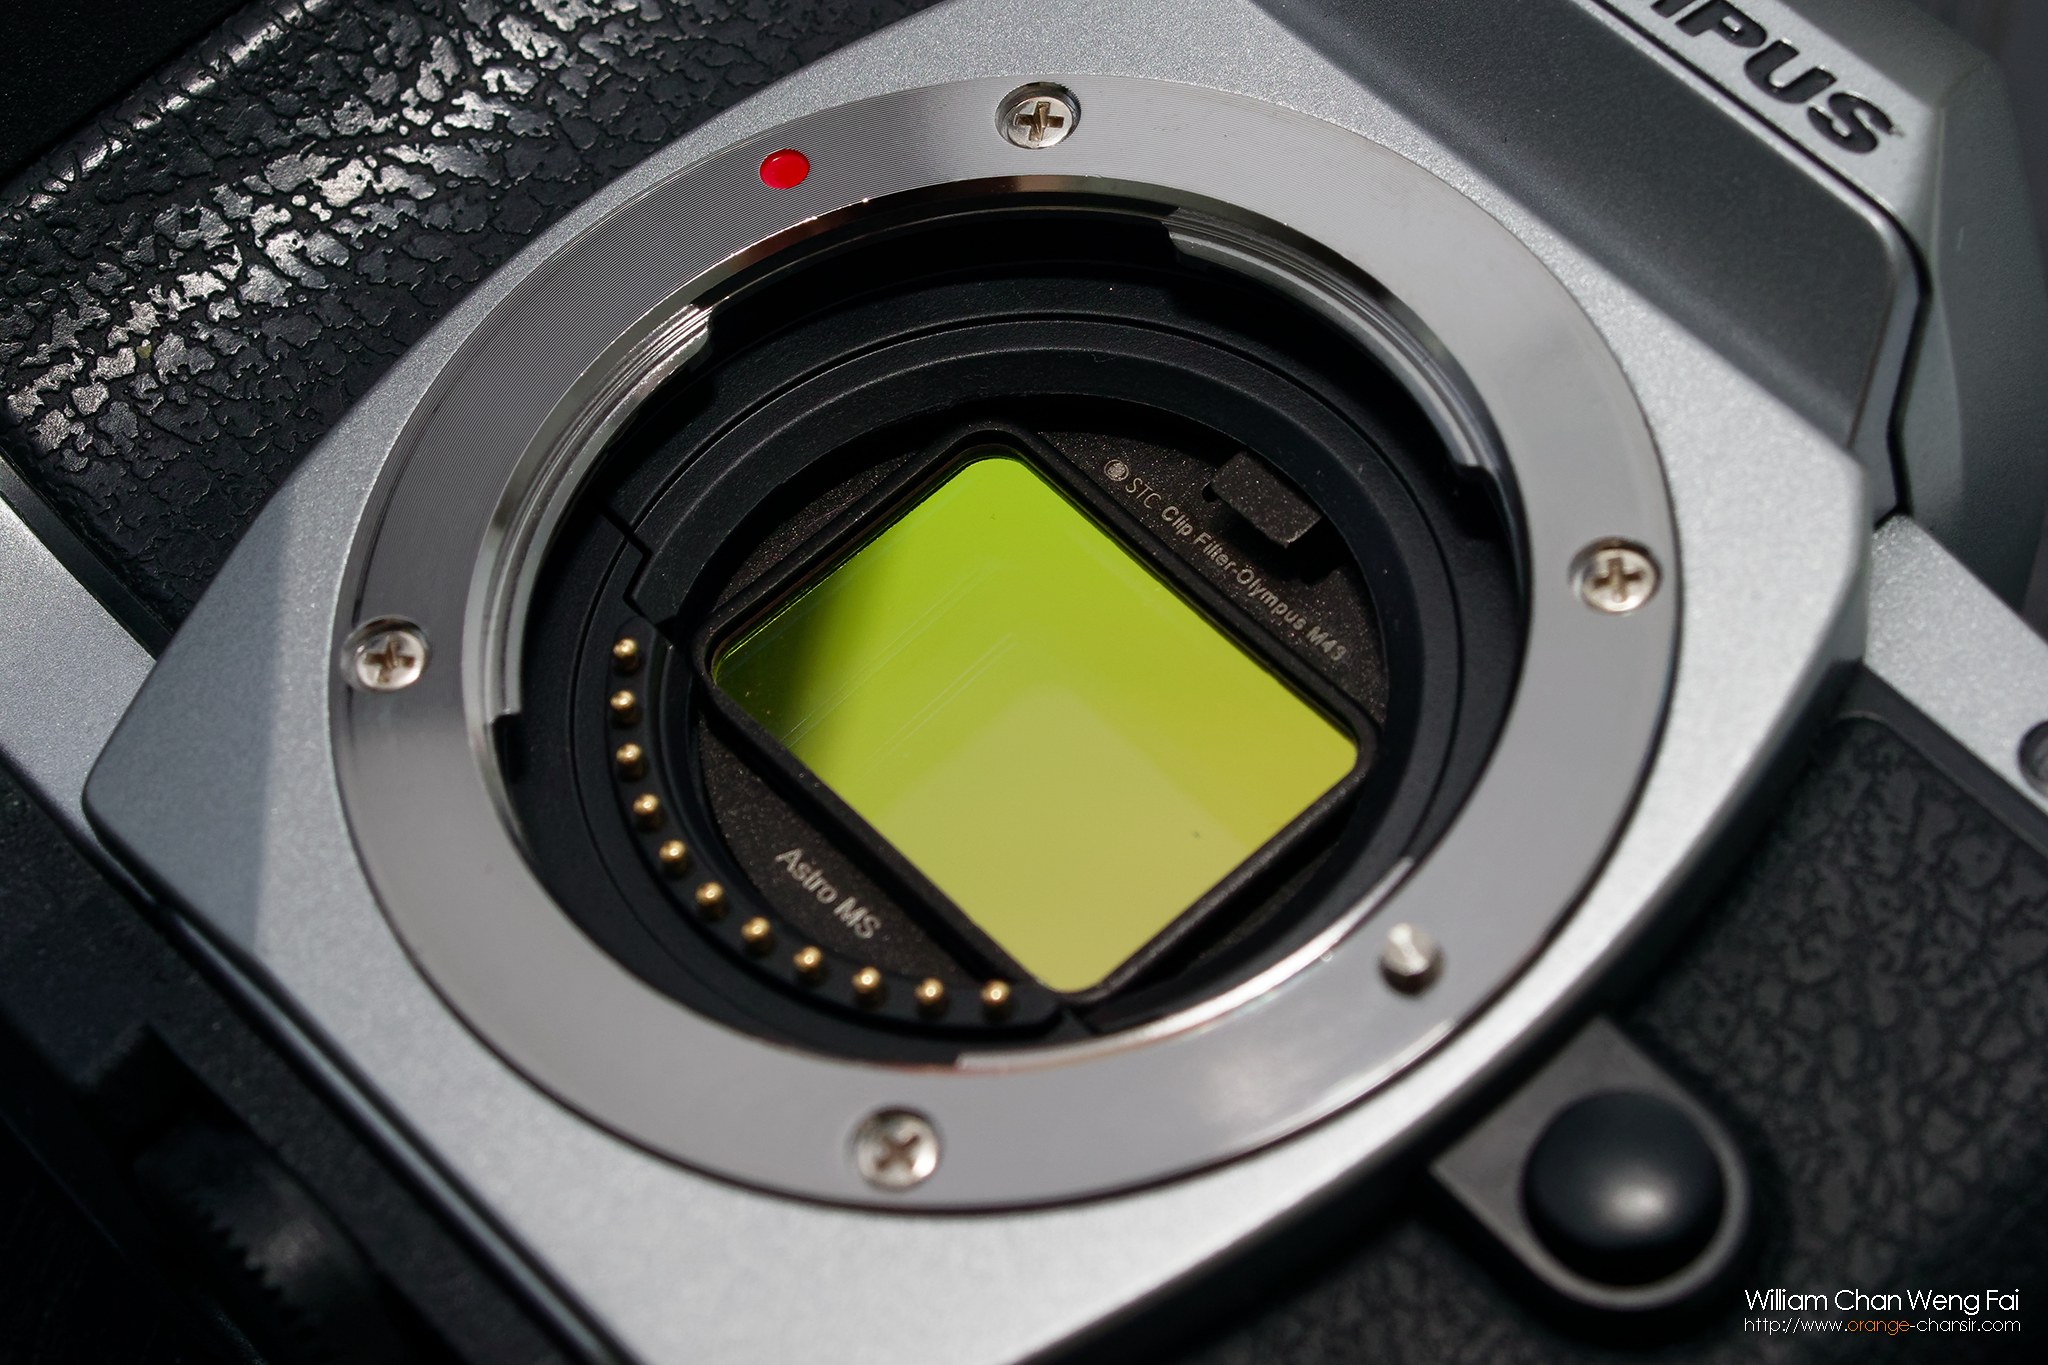 STC Astro-Multispectra Clip Filter for Olympus M4/3